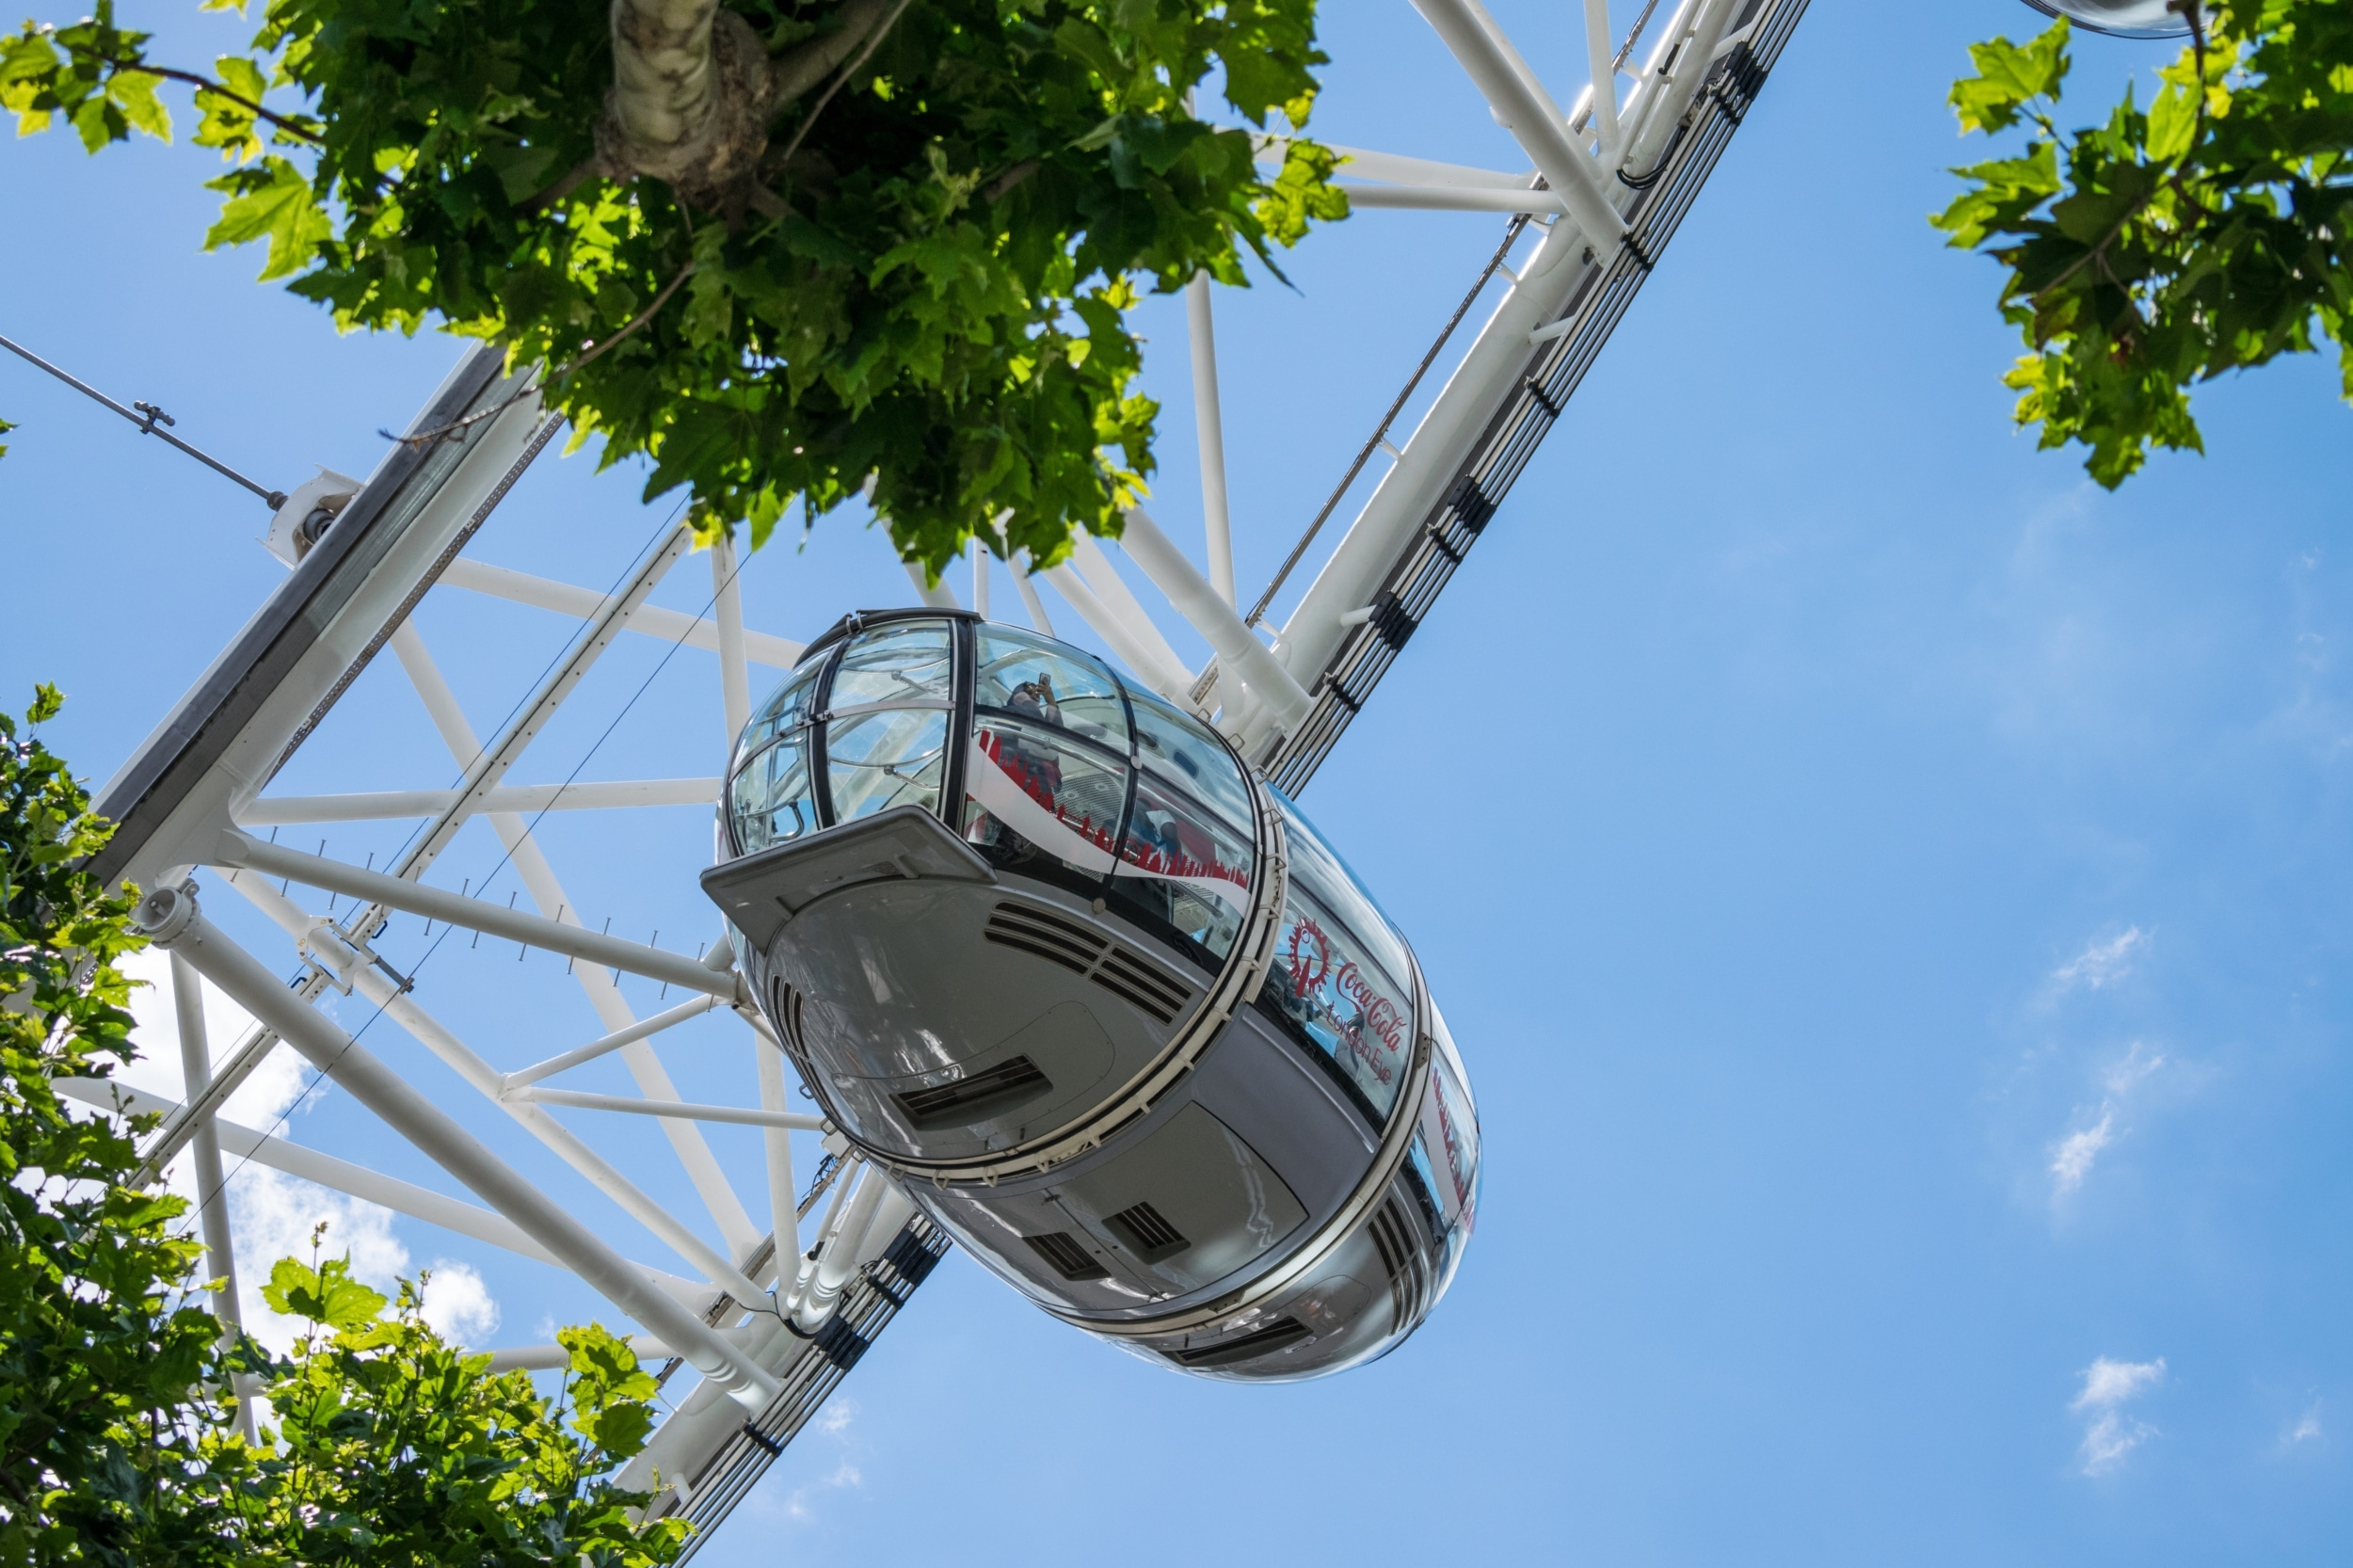 architecture-blue-sky-cable-cars-446035 (1)